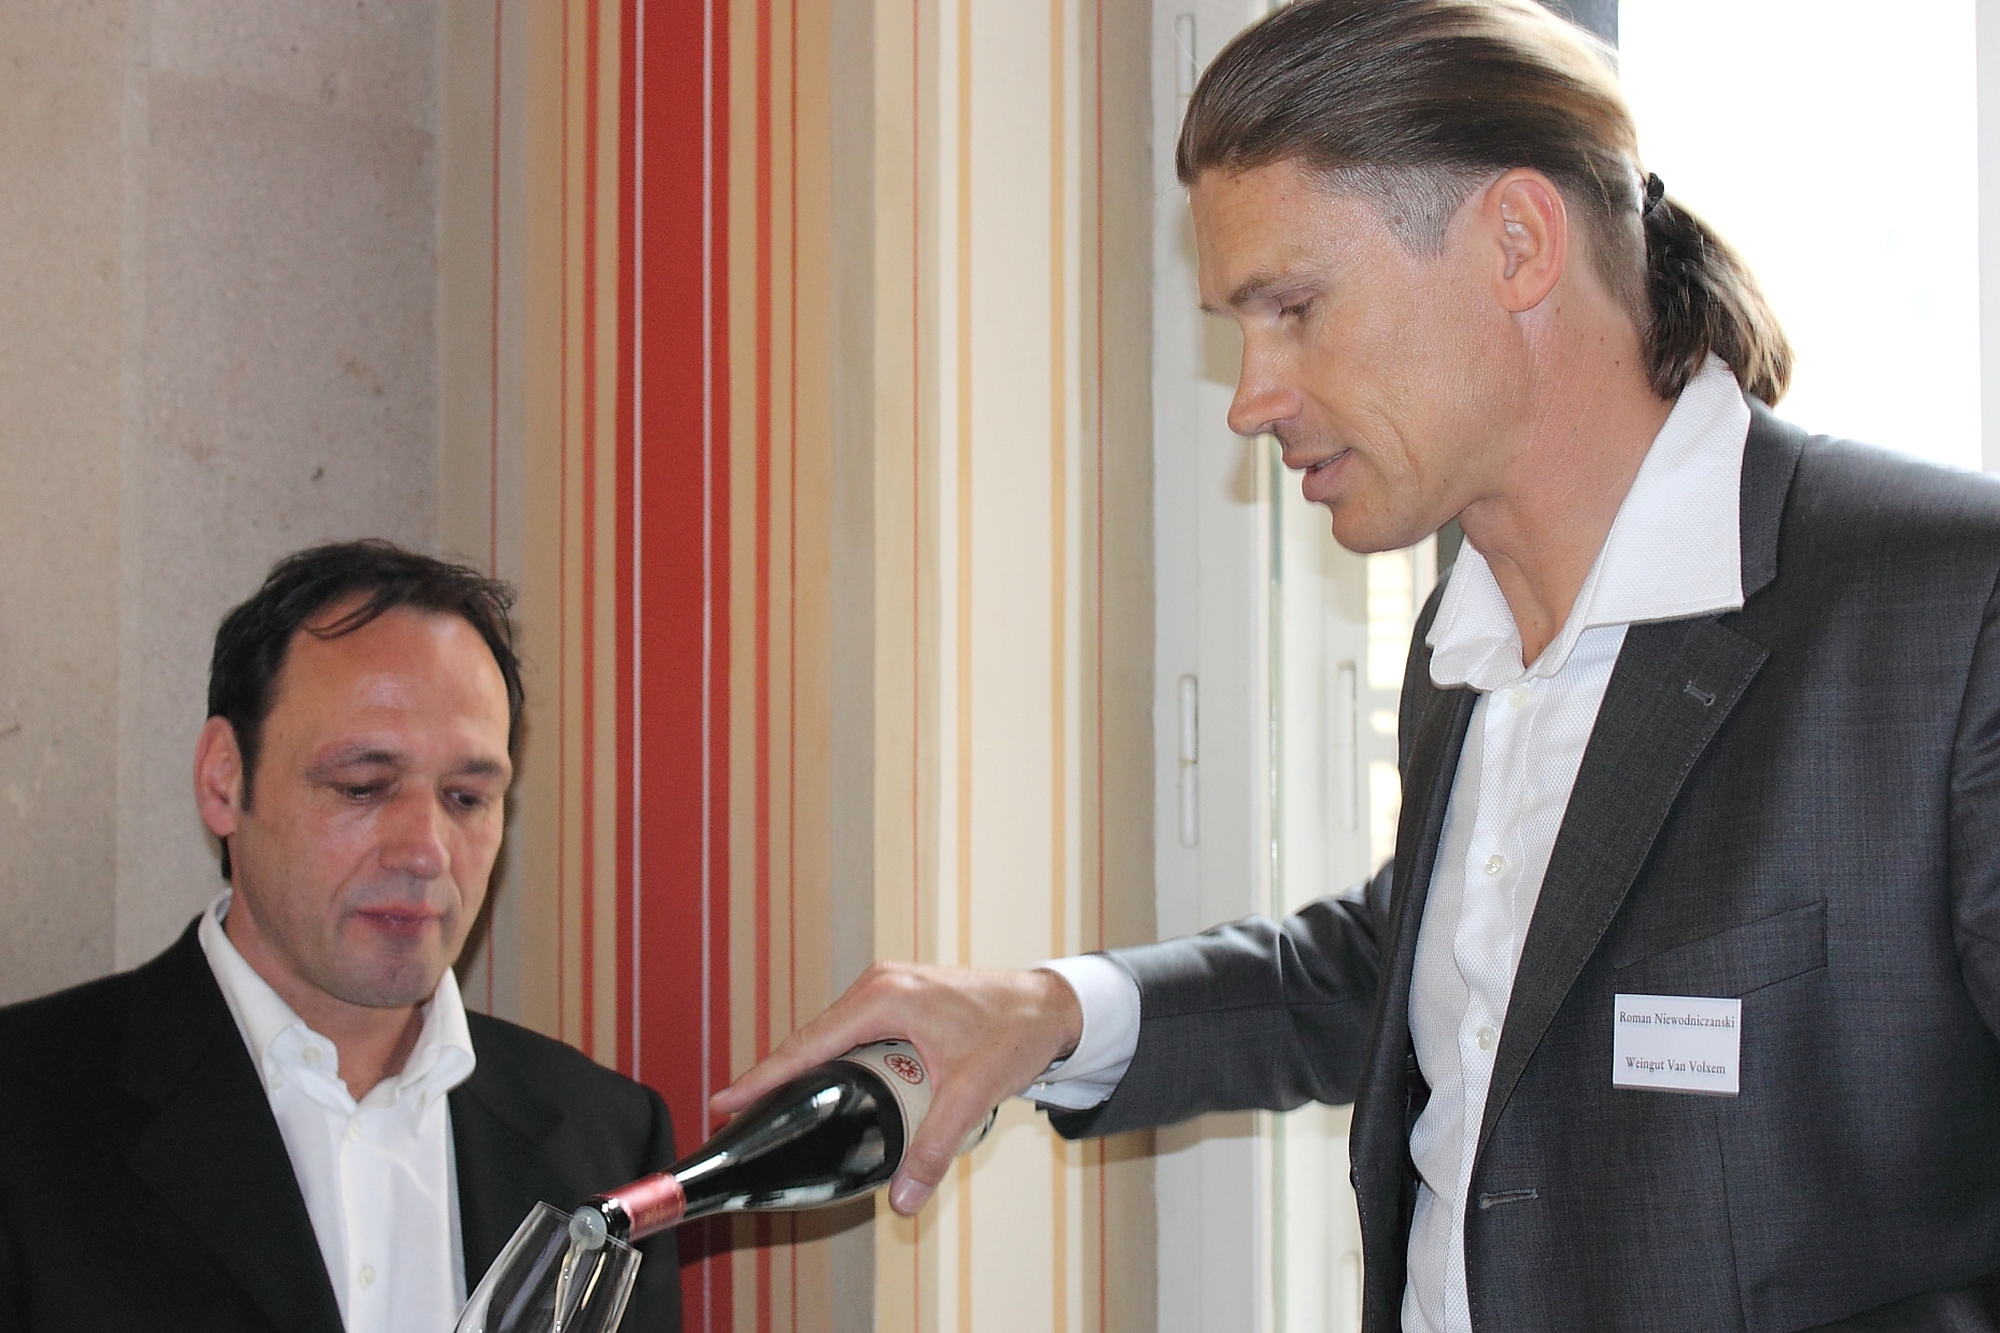 Mosel elite: Roman Niewodniczanski of Van Volxem (pouring) and Markus Molitor (receiving end)